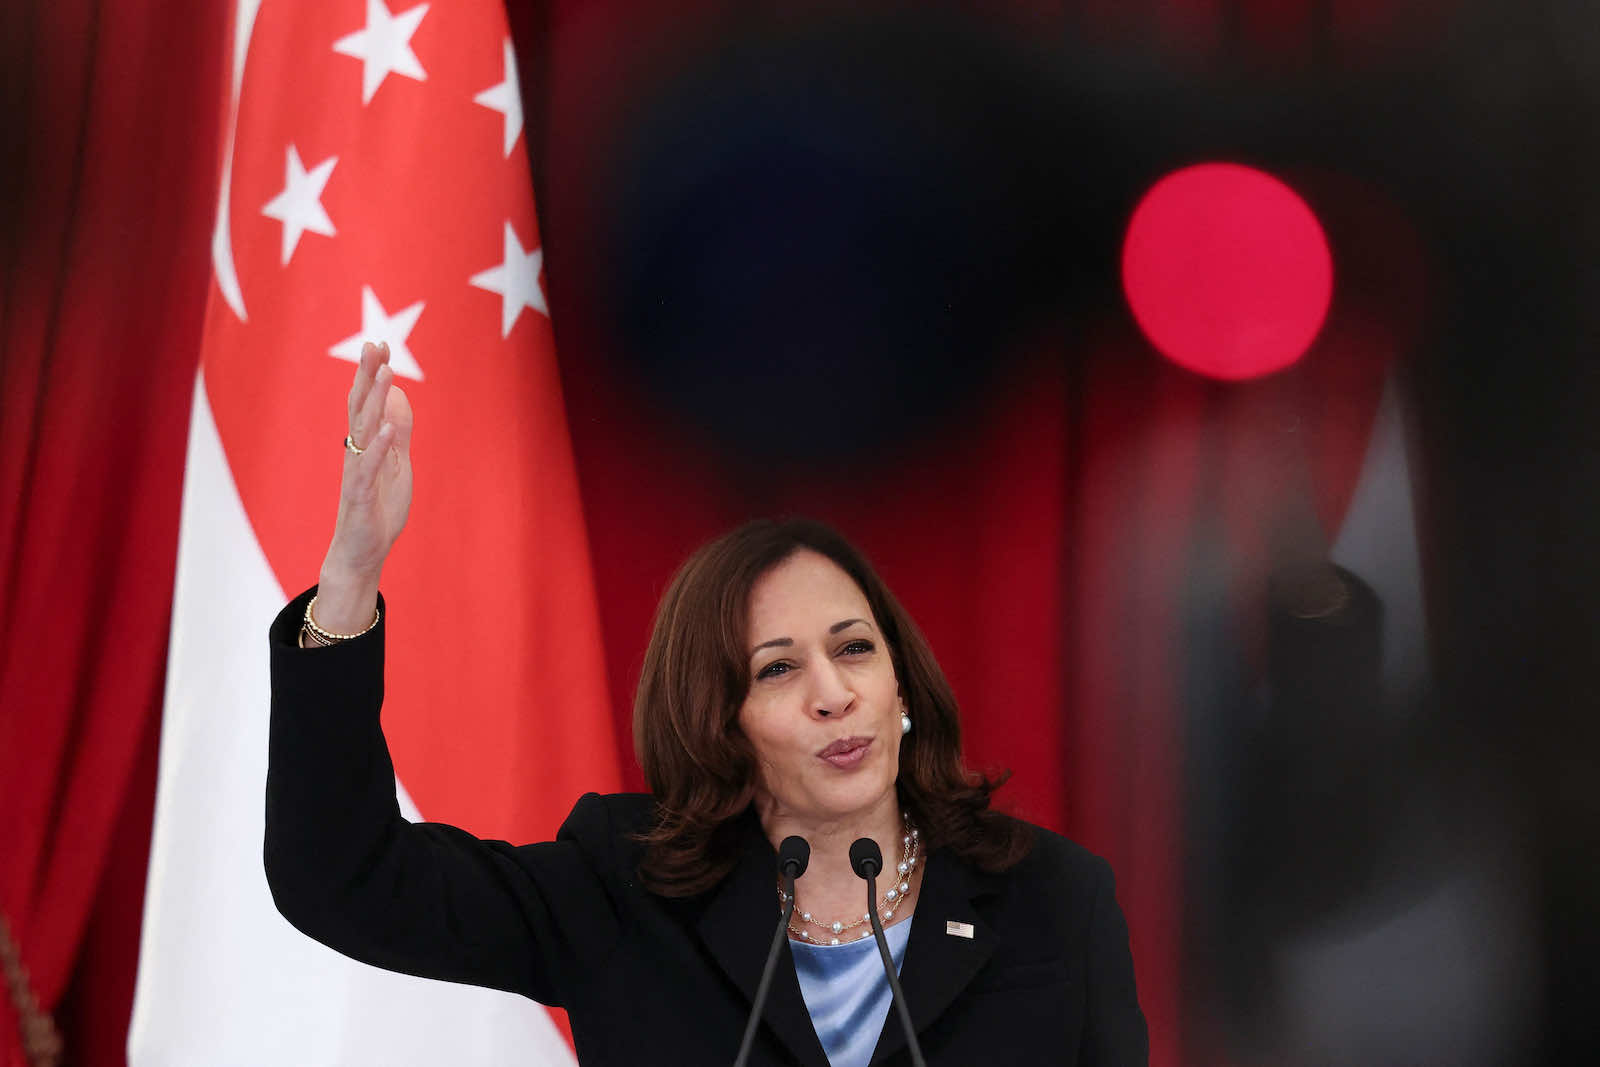 US Vice President Kamala Harris during a joint news conference with Singapore's Prime Minister Lee Hsien Loong in August (Evelyn Hockstein/AFP via Getty Images)